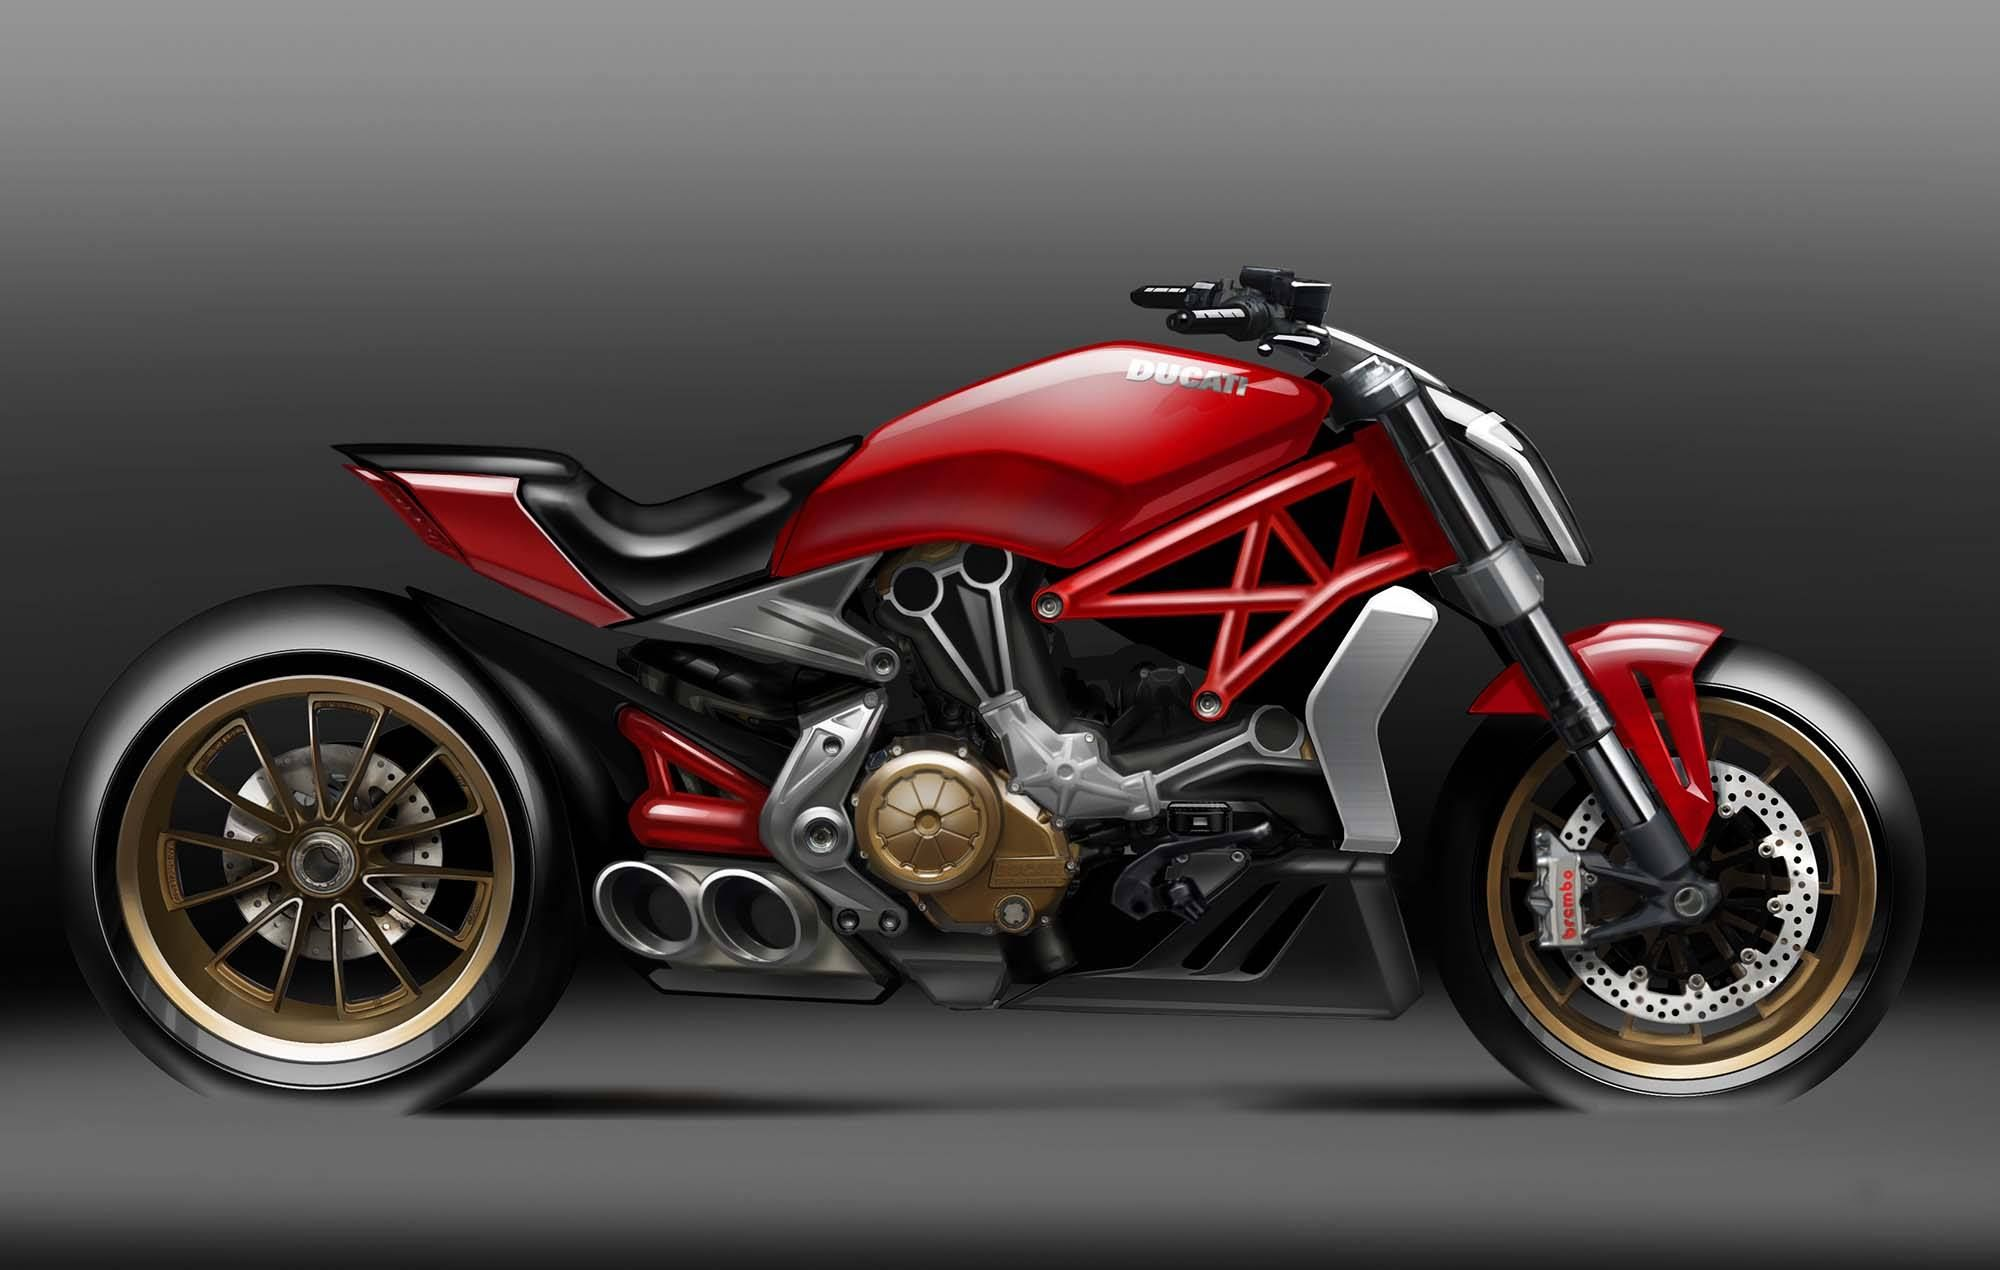 ducati diavel x sketch motorcycle pinterest ducati diavel ducati and motorcycle design. Black Bedroom Furniture Sets. Home Design Ideas